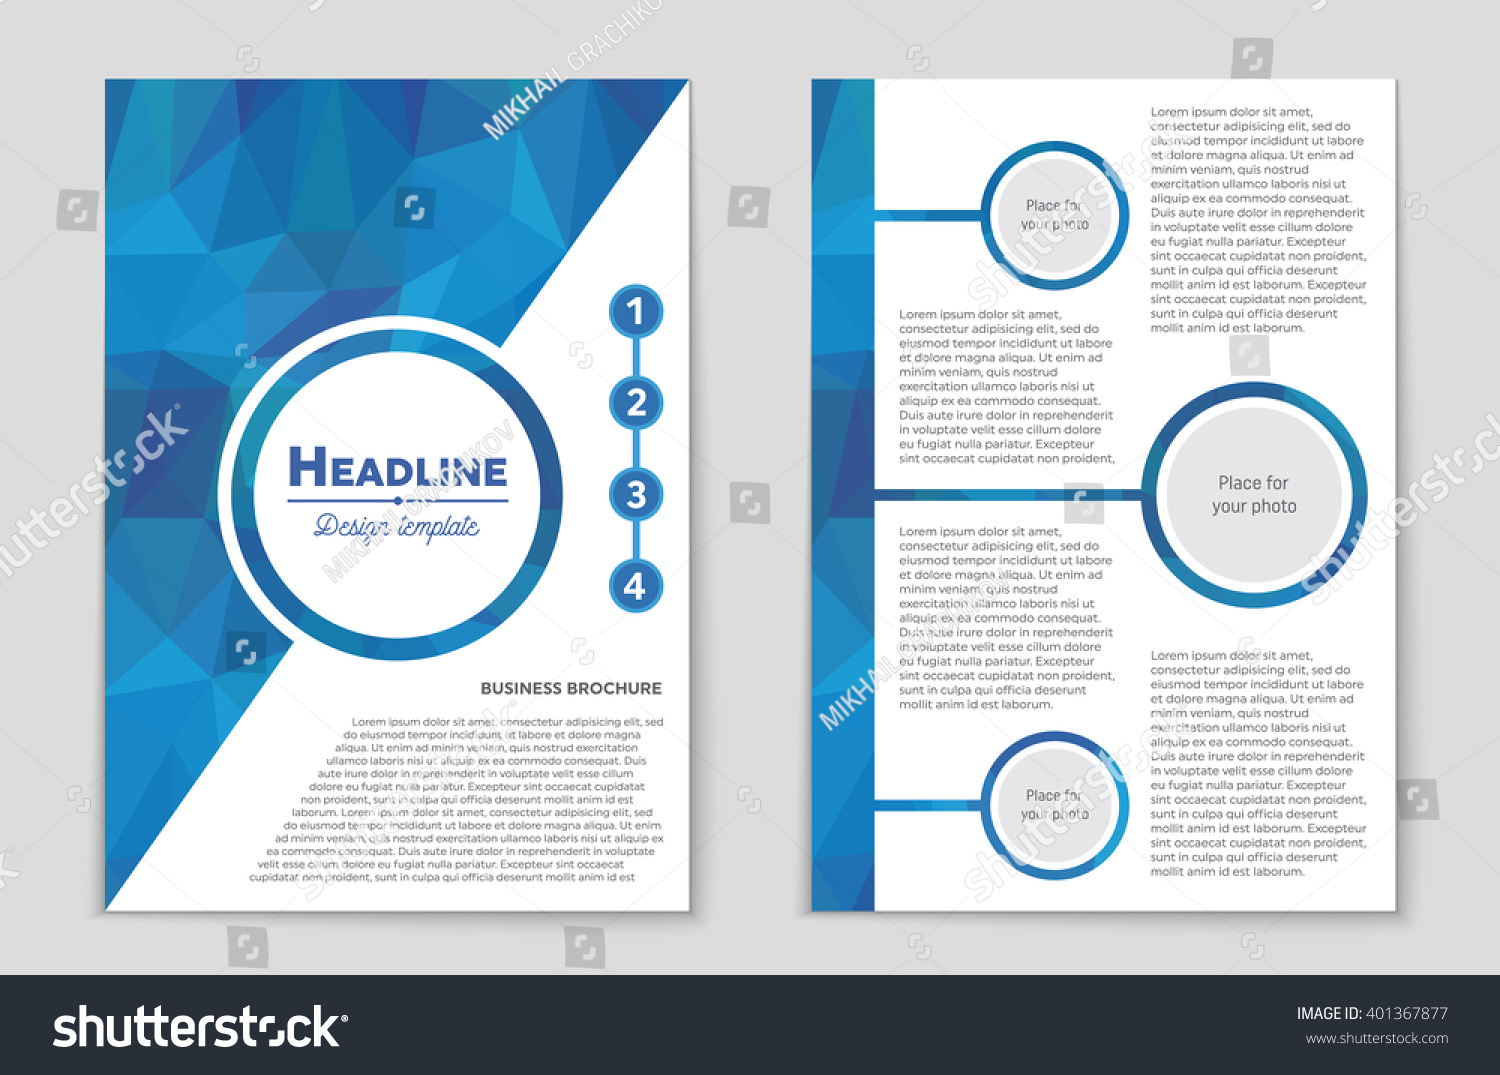 royalty abstract vector layout background for 401367877 abstract vector layout background for web and mobile app art template design list page mockup brochure theme style banner idea cover booklet print